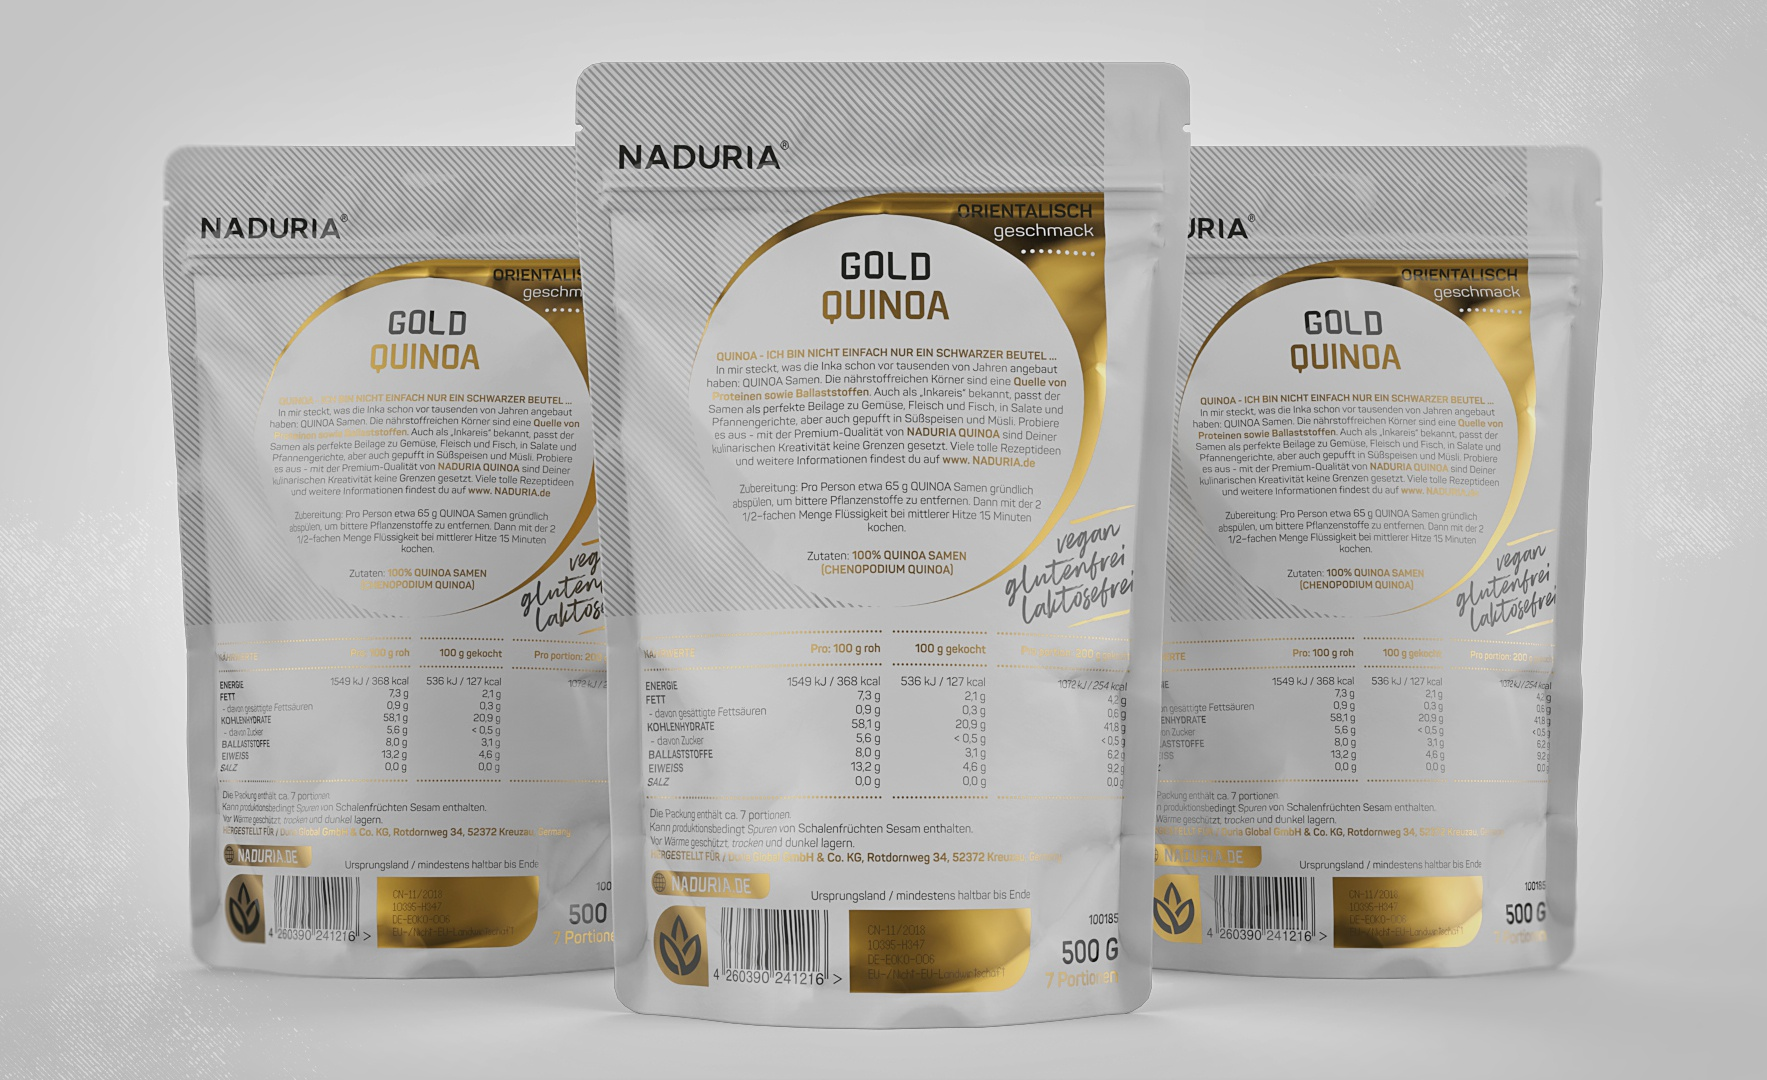 Naduria     quinoa gold   stand up pouch 500g   prototype concept v.2.2